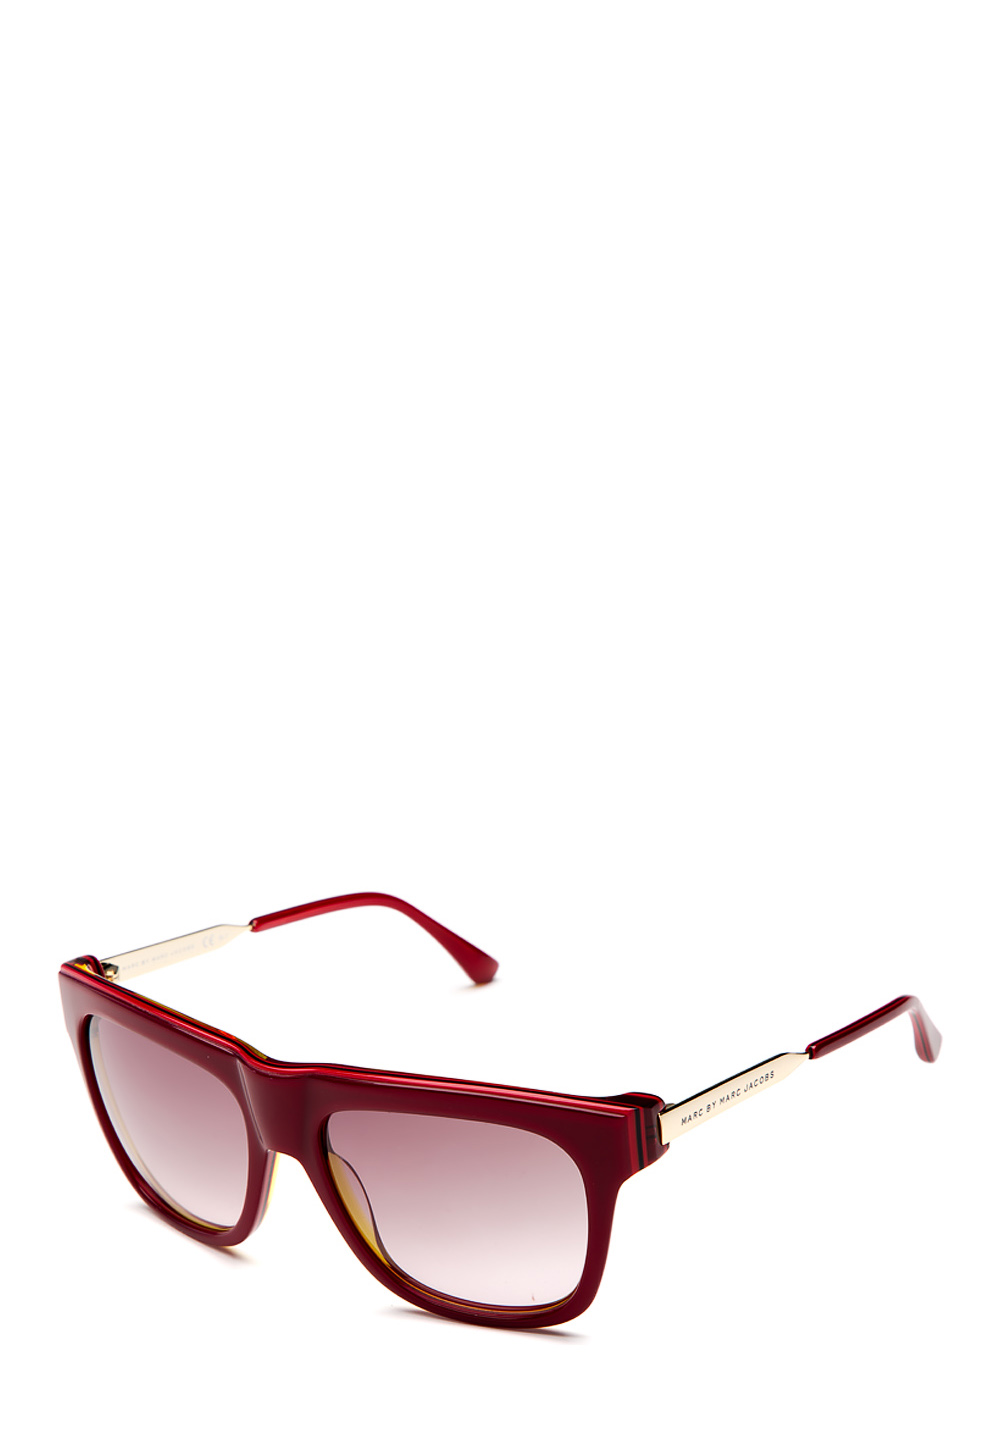 Marc BY Sonnenbrille Mmj293, UV 400, rot